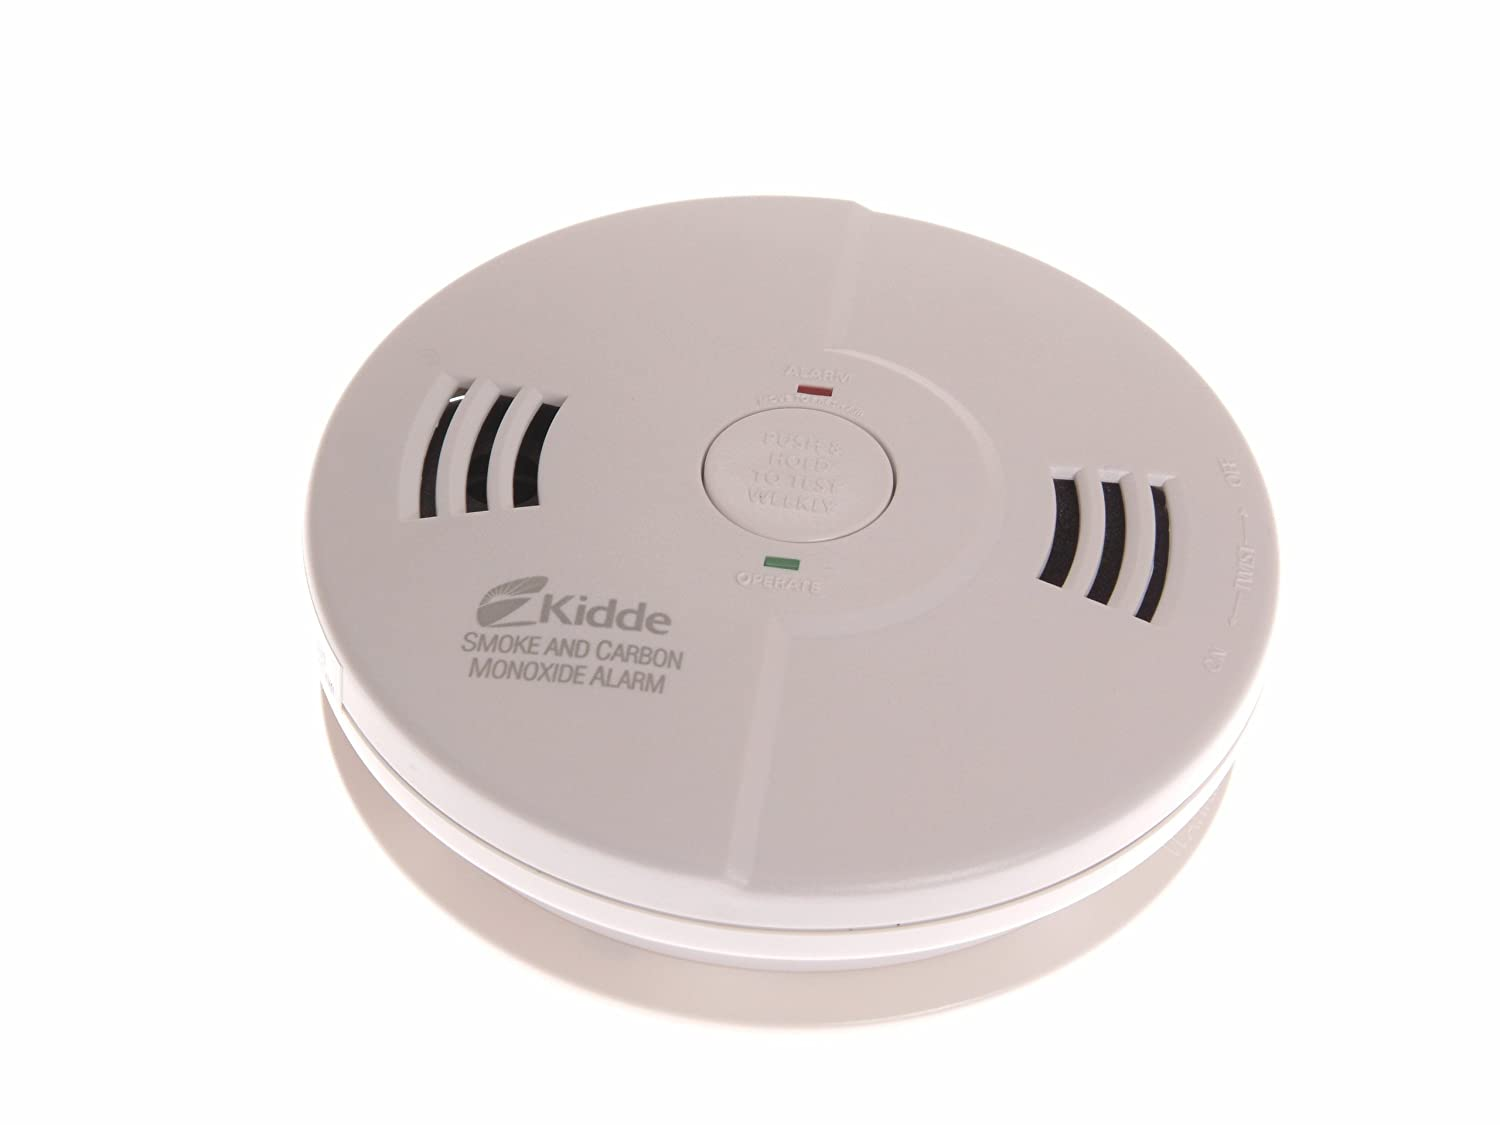 Kidde 0122UK Combination Smoke & Carbon Monoxide Alarm 10SCO